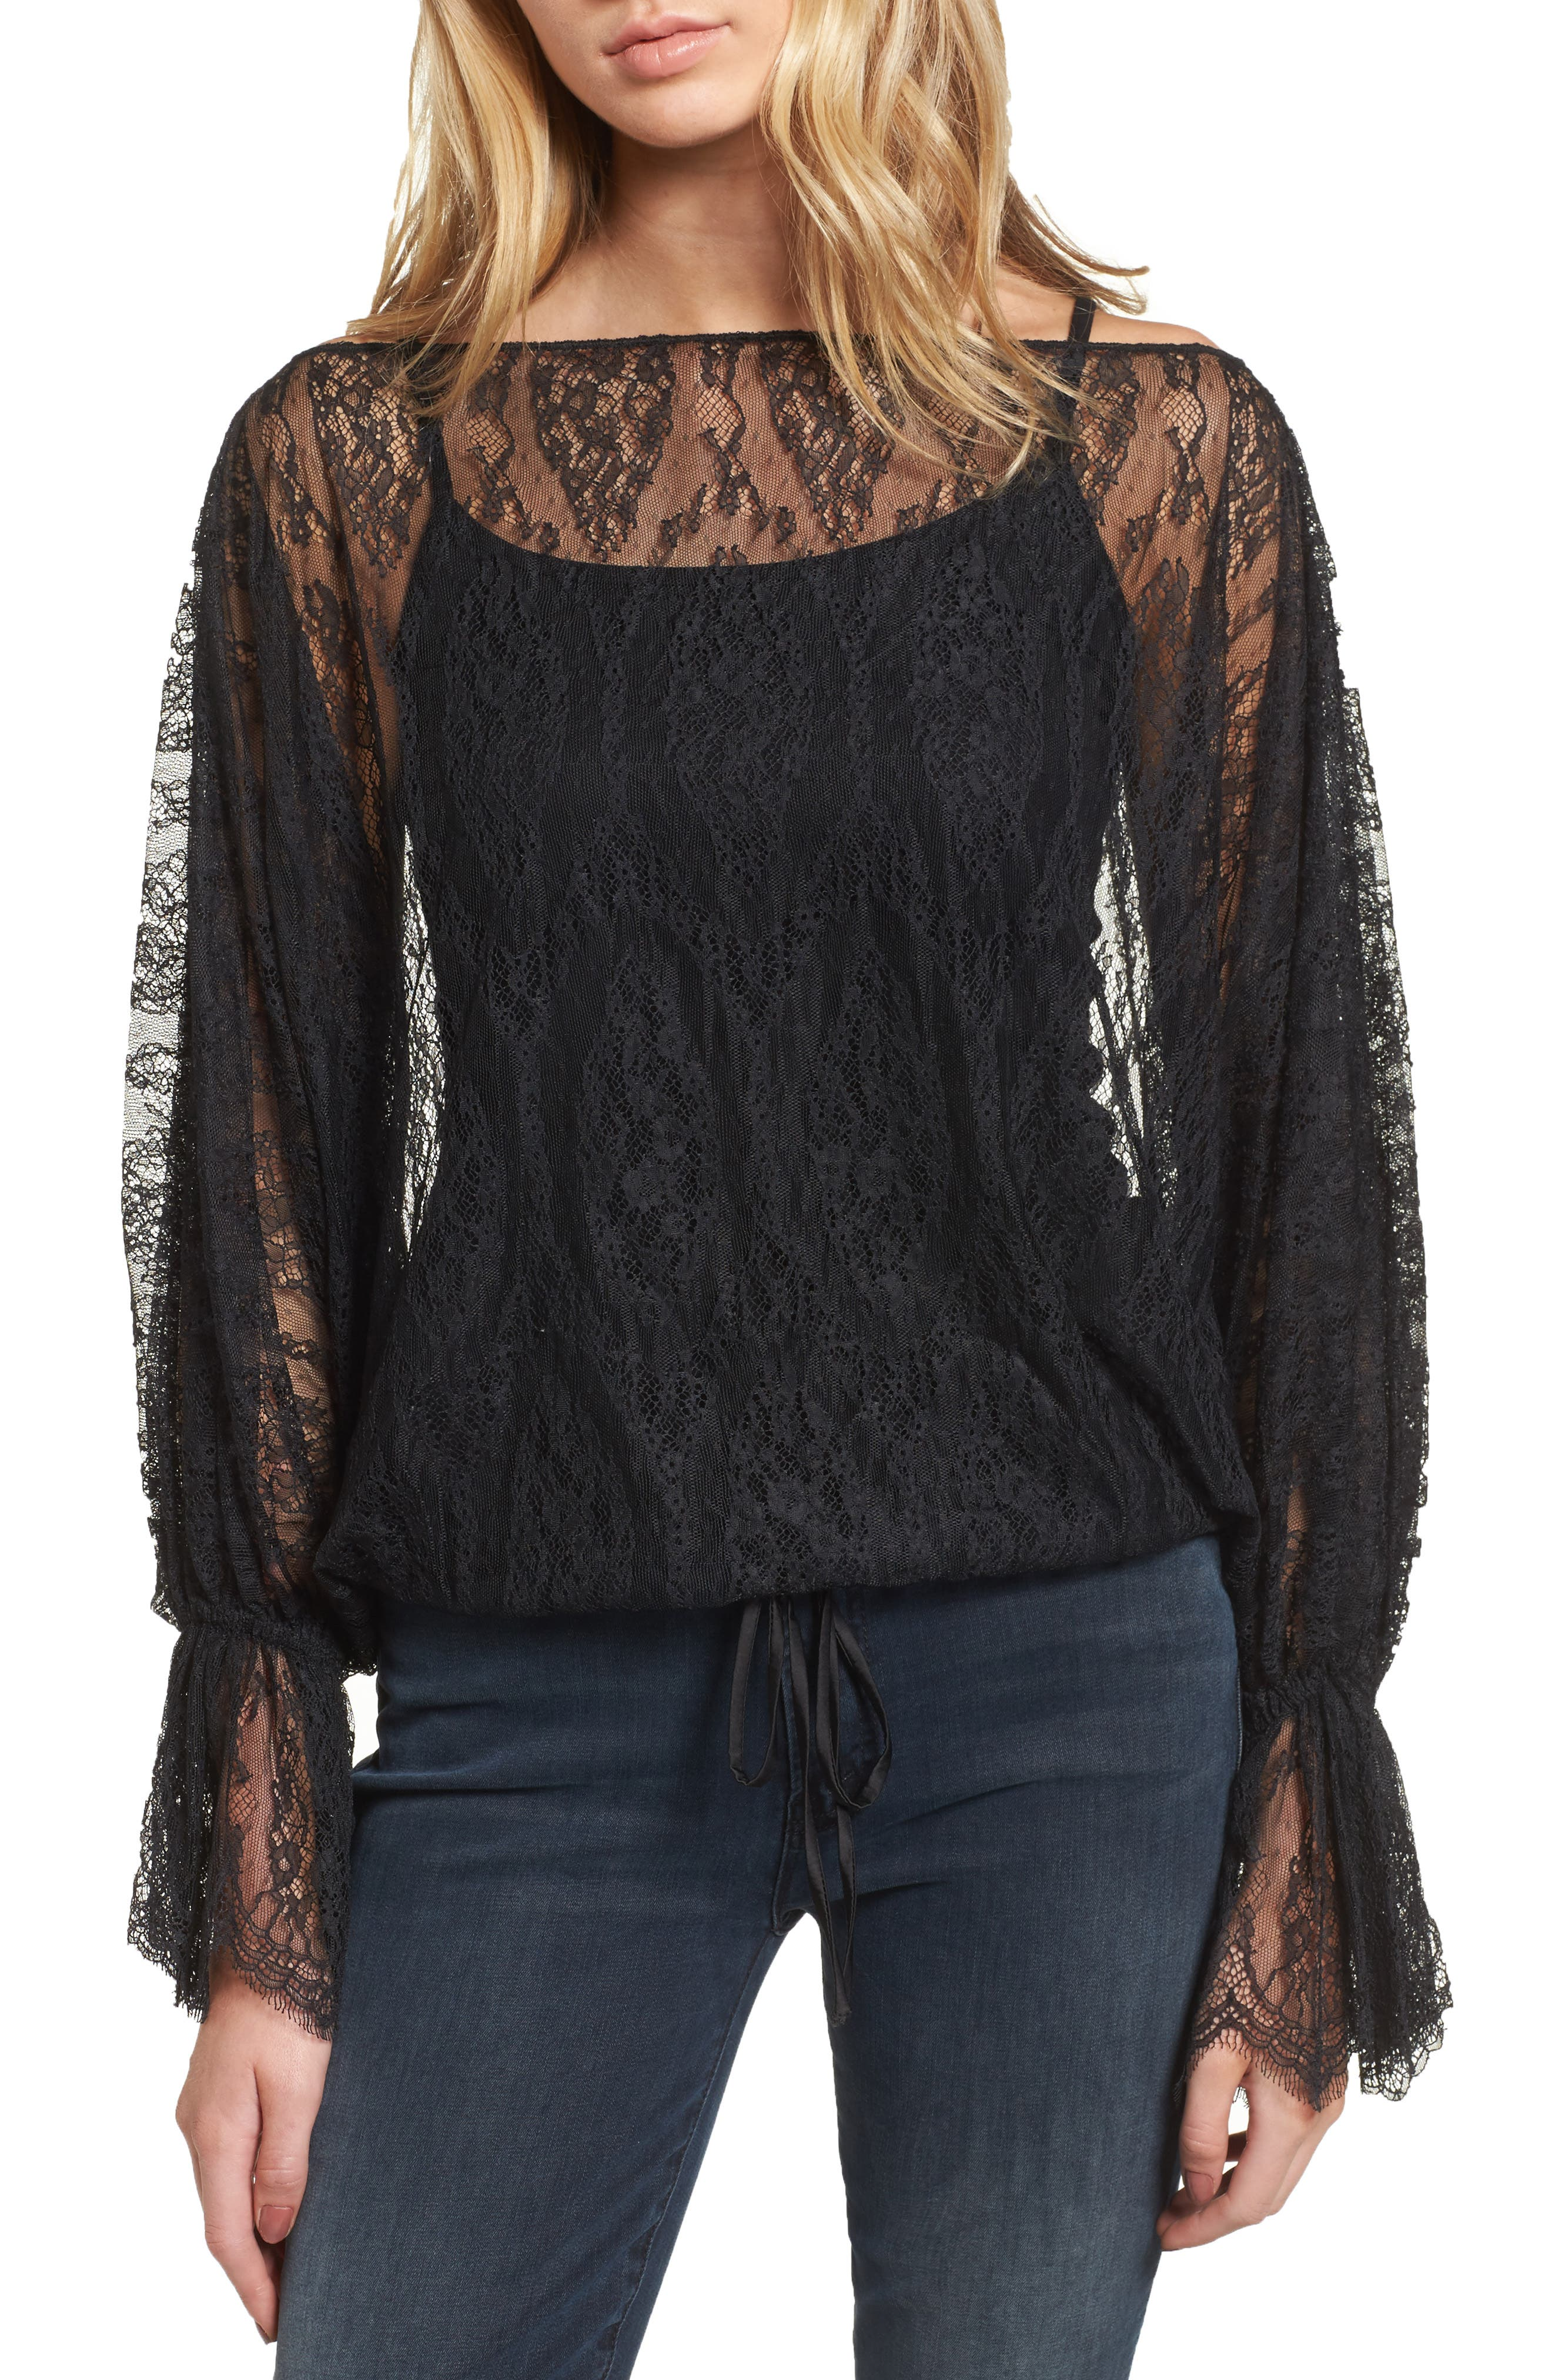 Bliss of Insanity Lace Top,                         Main,                         color, Black